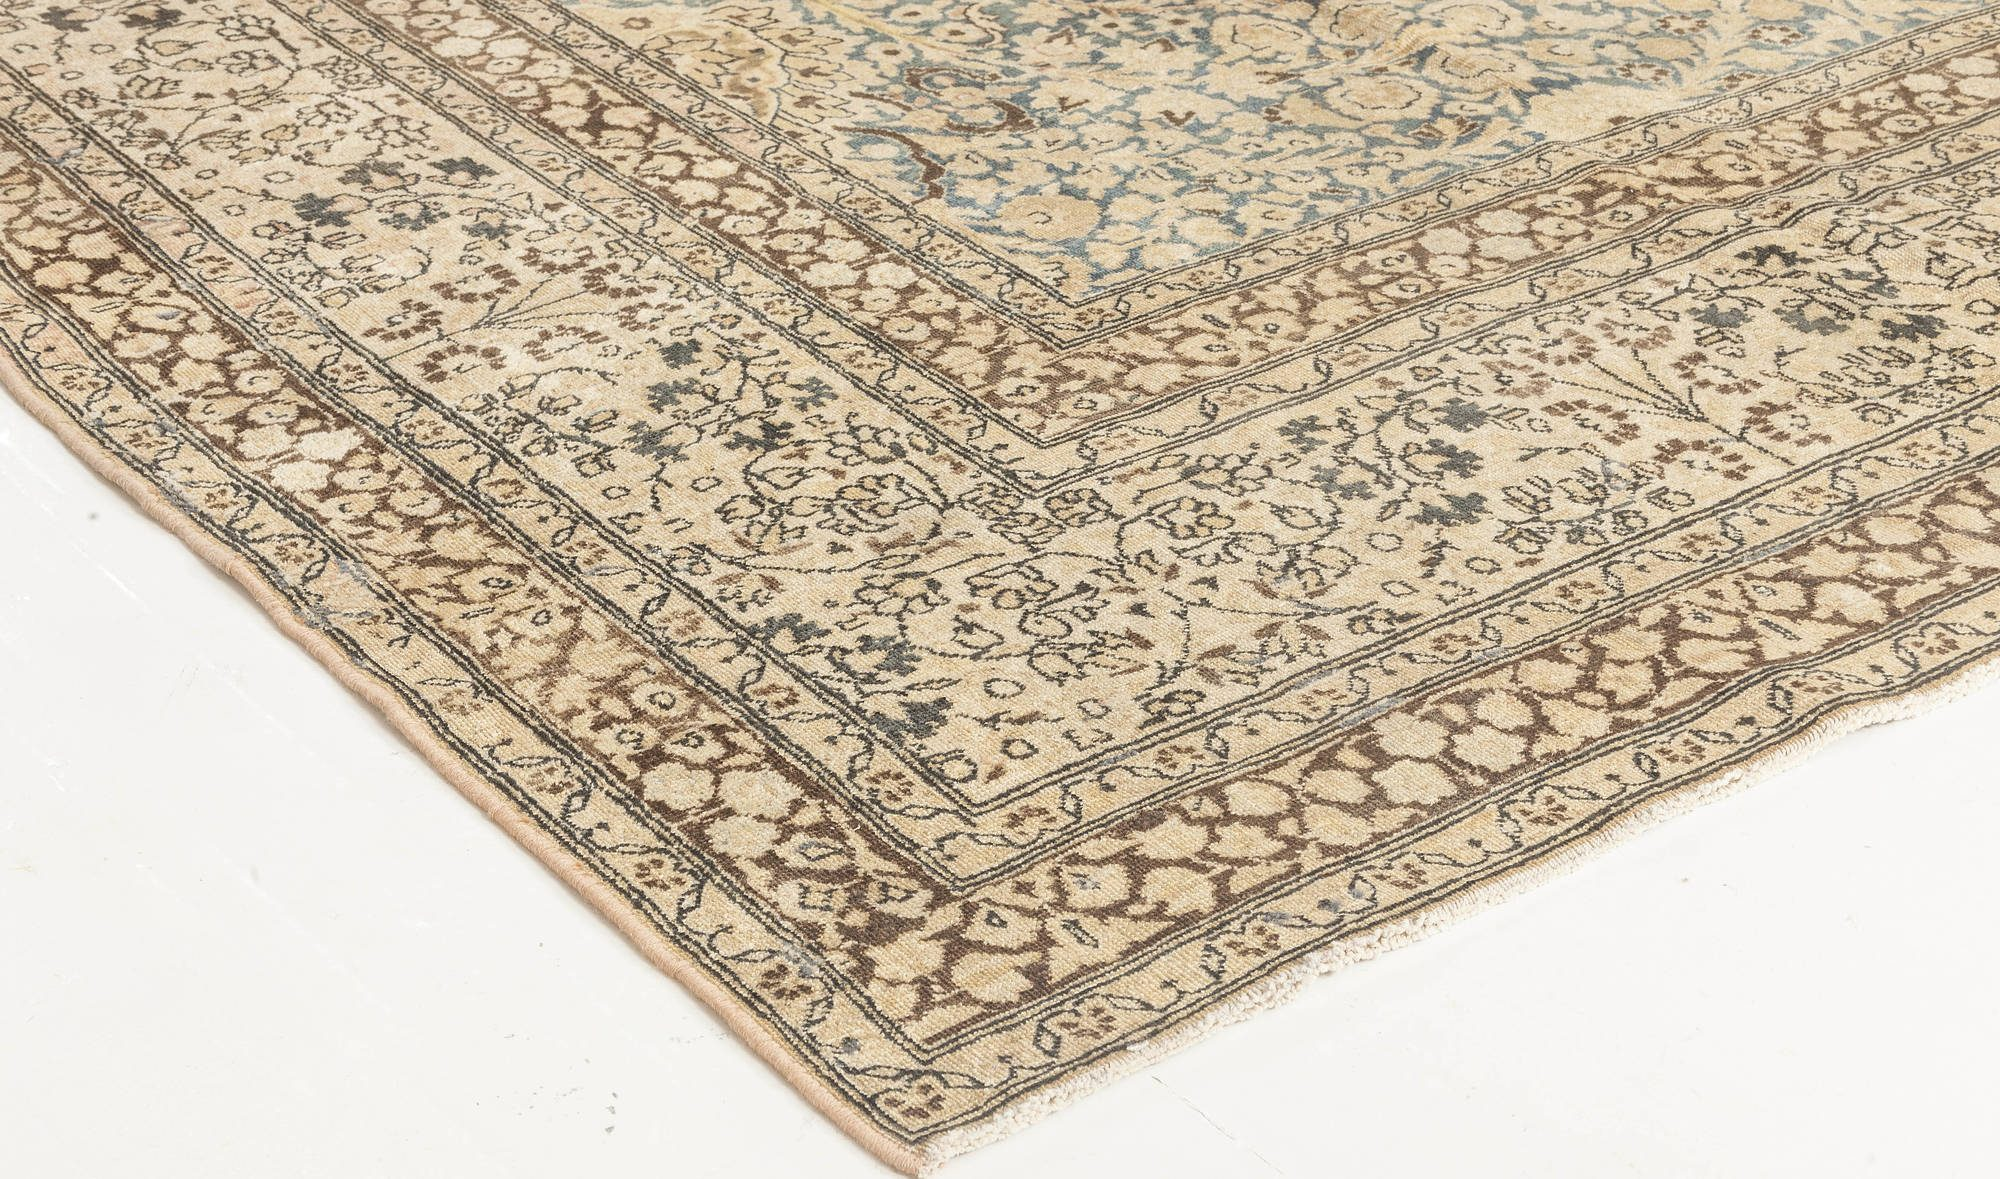 Antique Persian Meshad Carpet BB2287